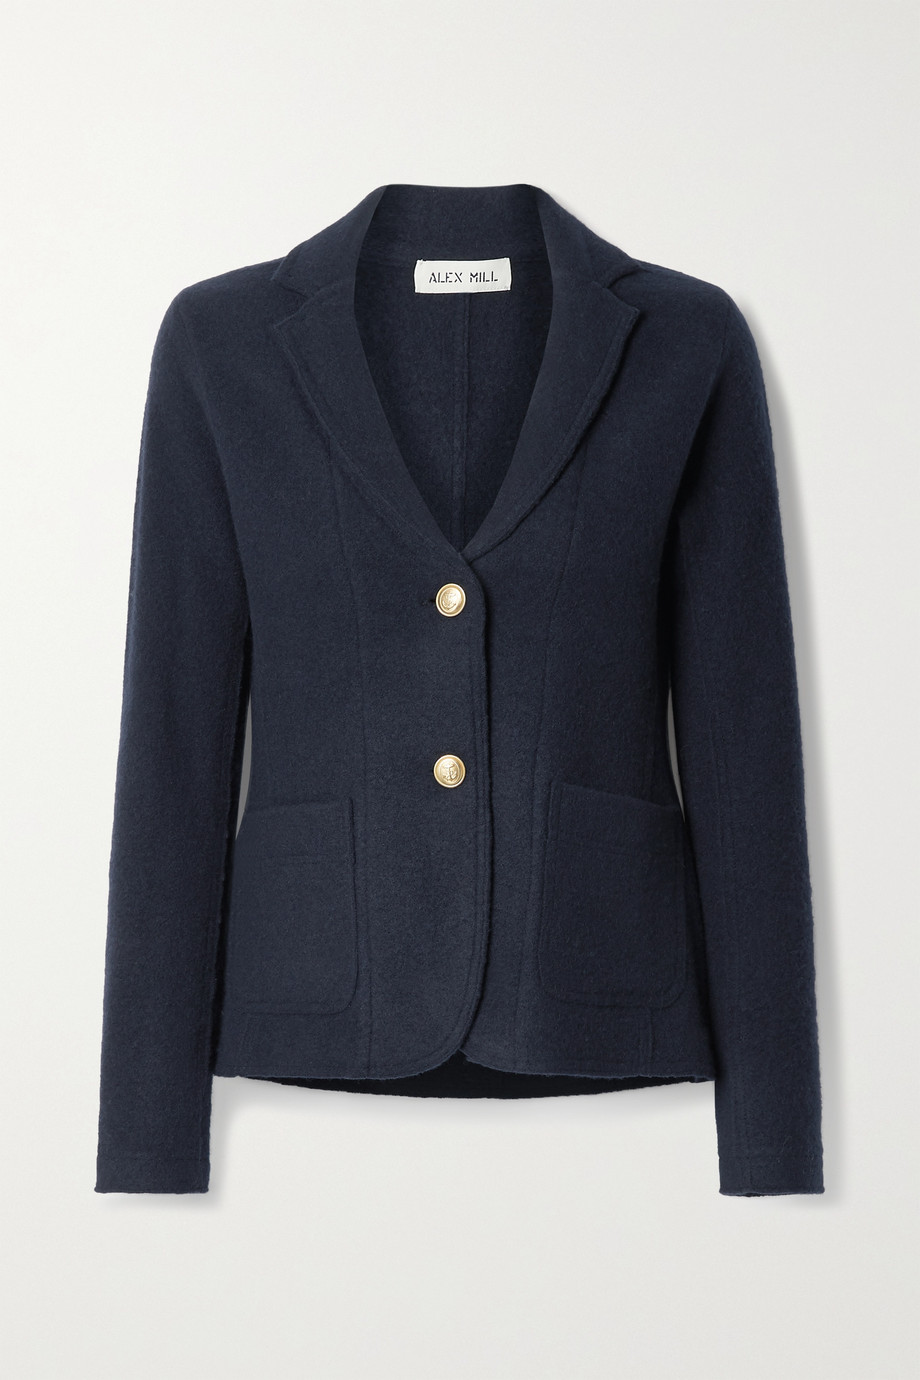 Alex Mill Merino wool-felt blazer